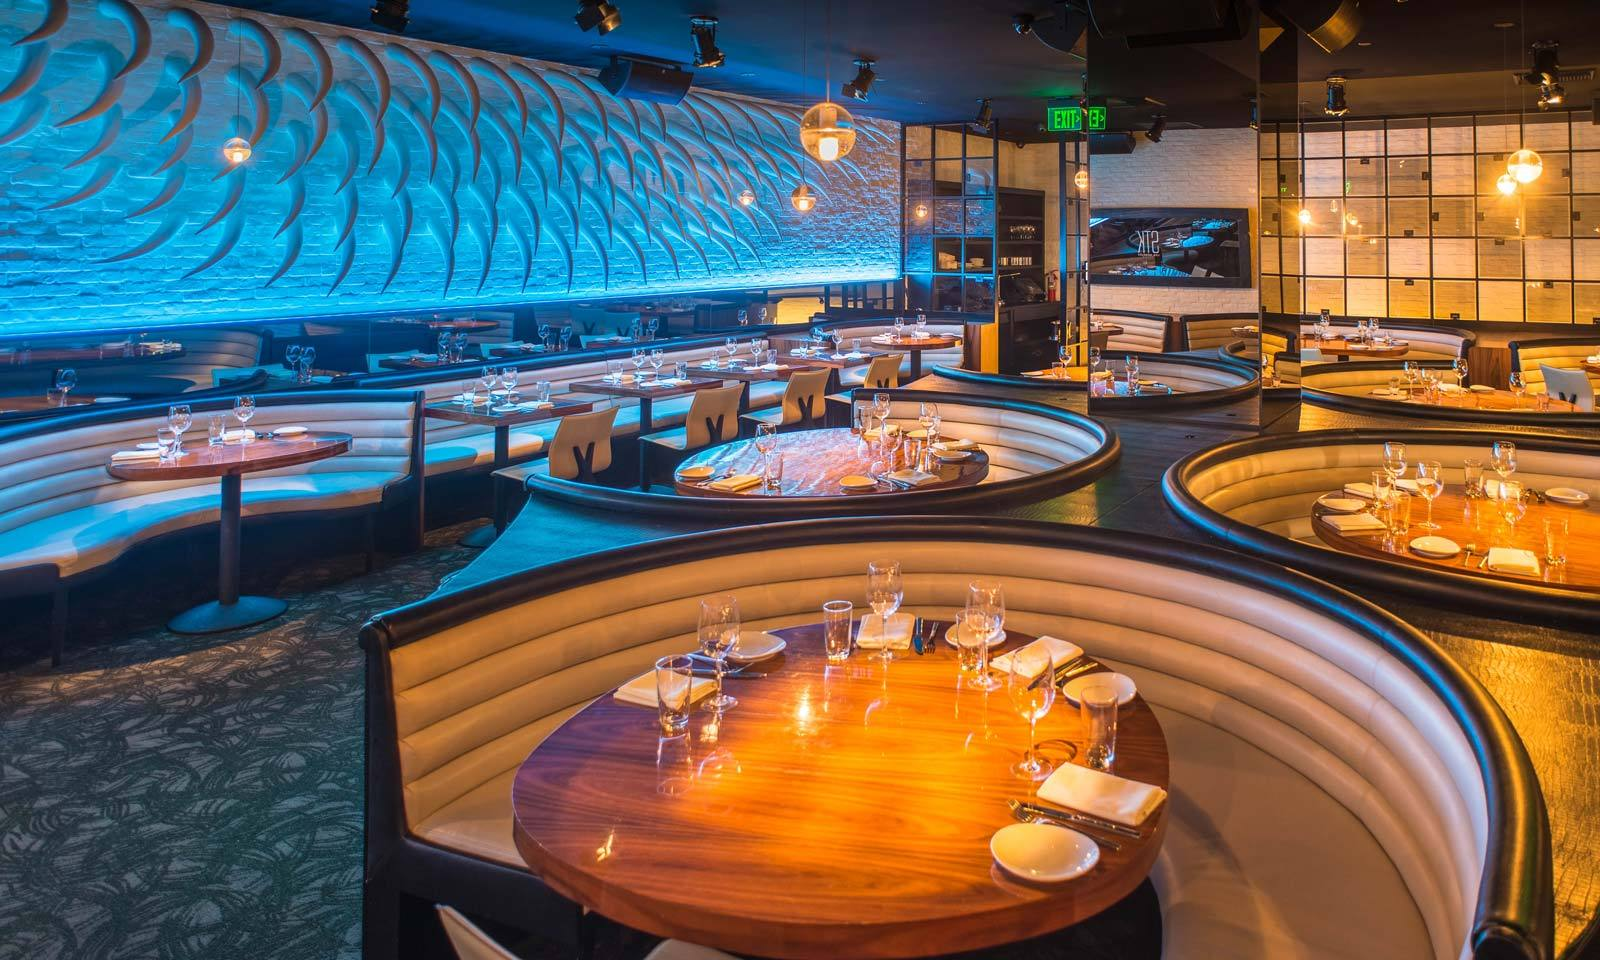 Dining room at STK Steakhouse in the W Los Angeles - West Beverly Hills